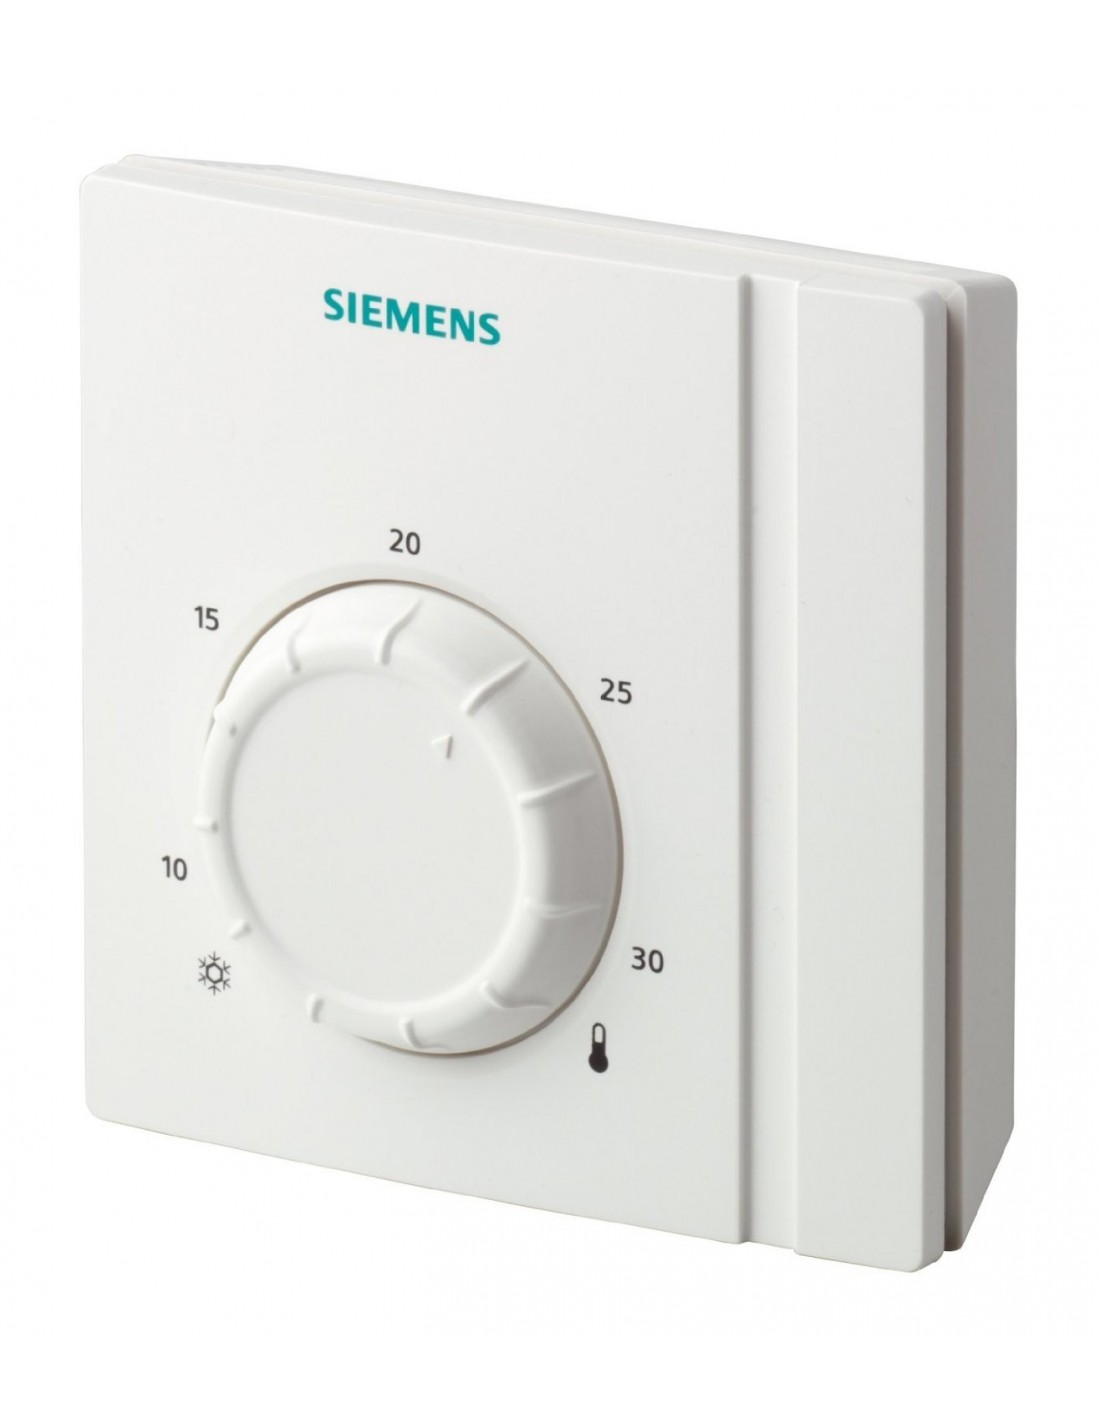 Thermostat d 39 ambiance raa siemens1 - Thermostat radiateur chauffage central ...